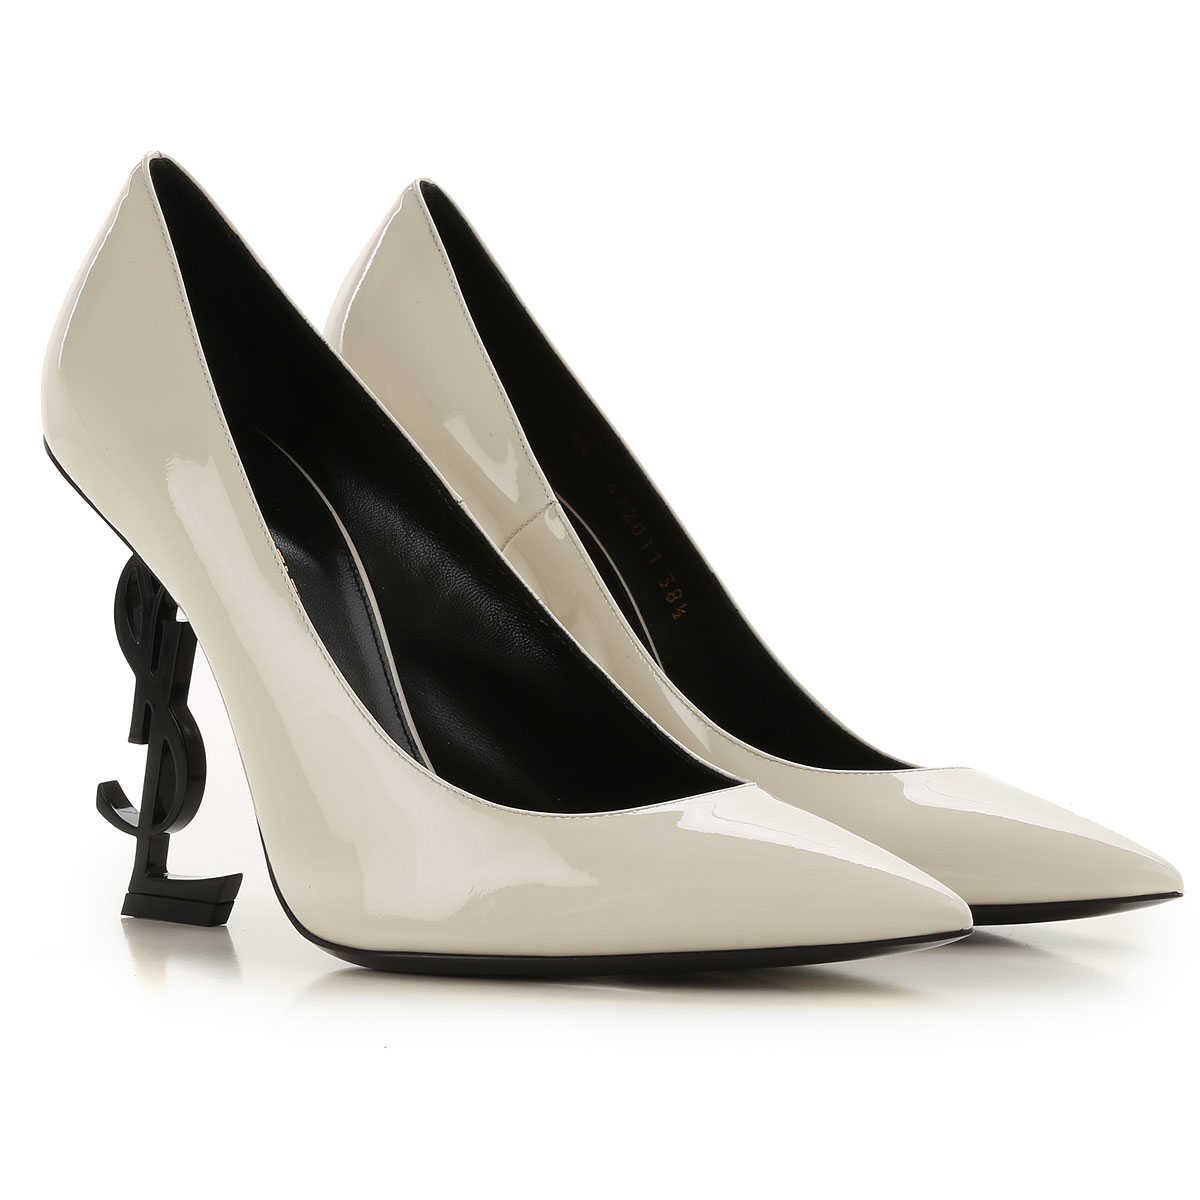 Yves Saint Laurent Pumps & High Heels for Women Dirty White USA - GOOFASH